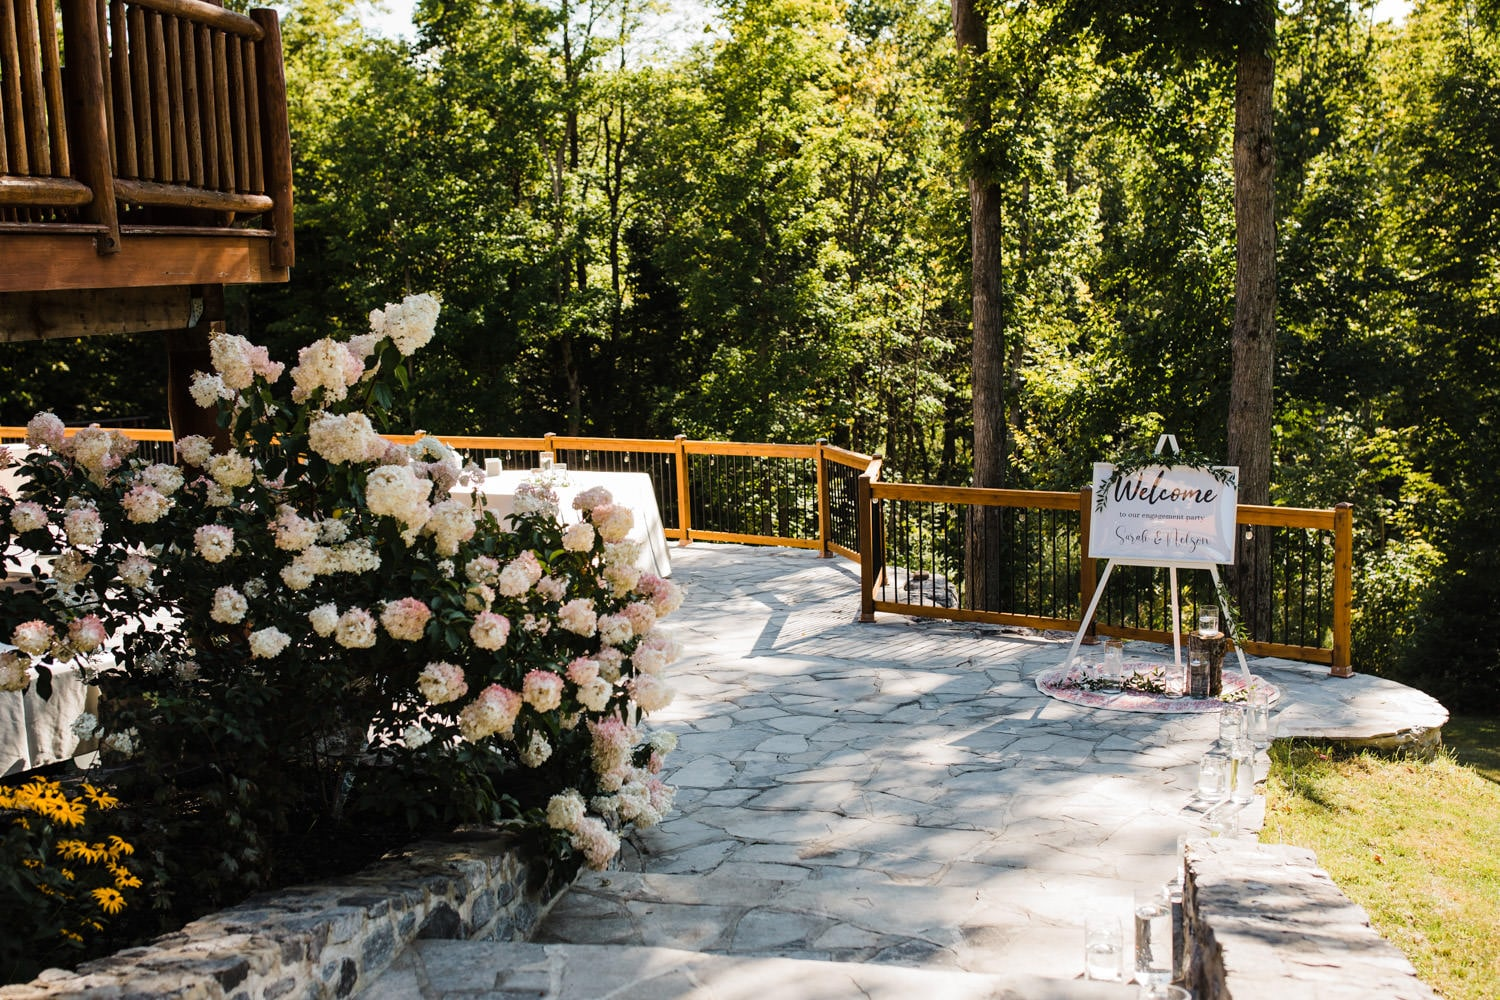 welcome to our wedding sign on stone patio - surprise wedding ottawa